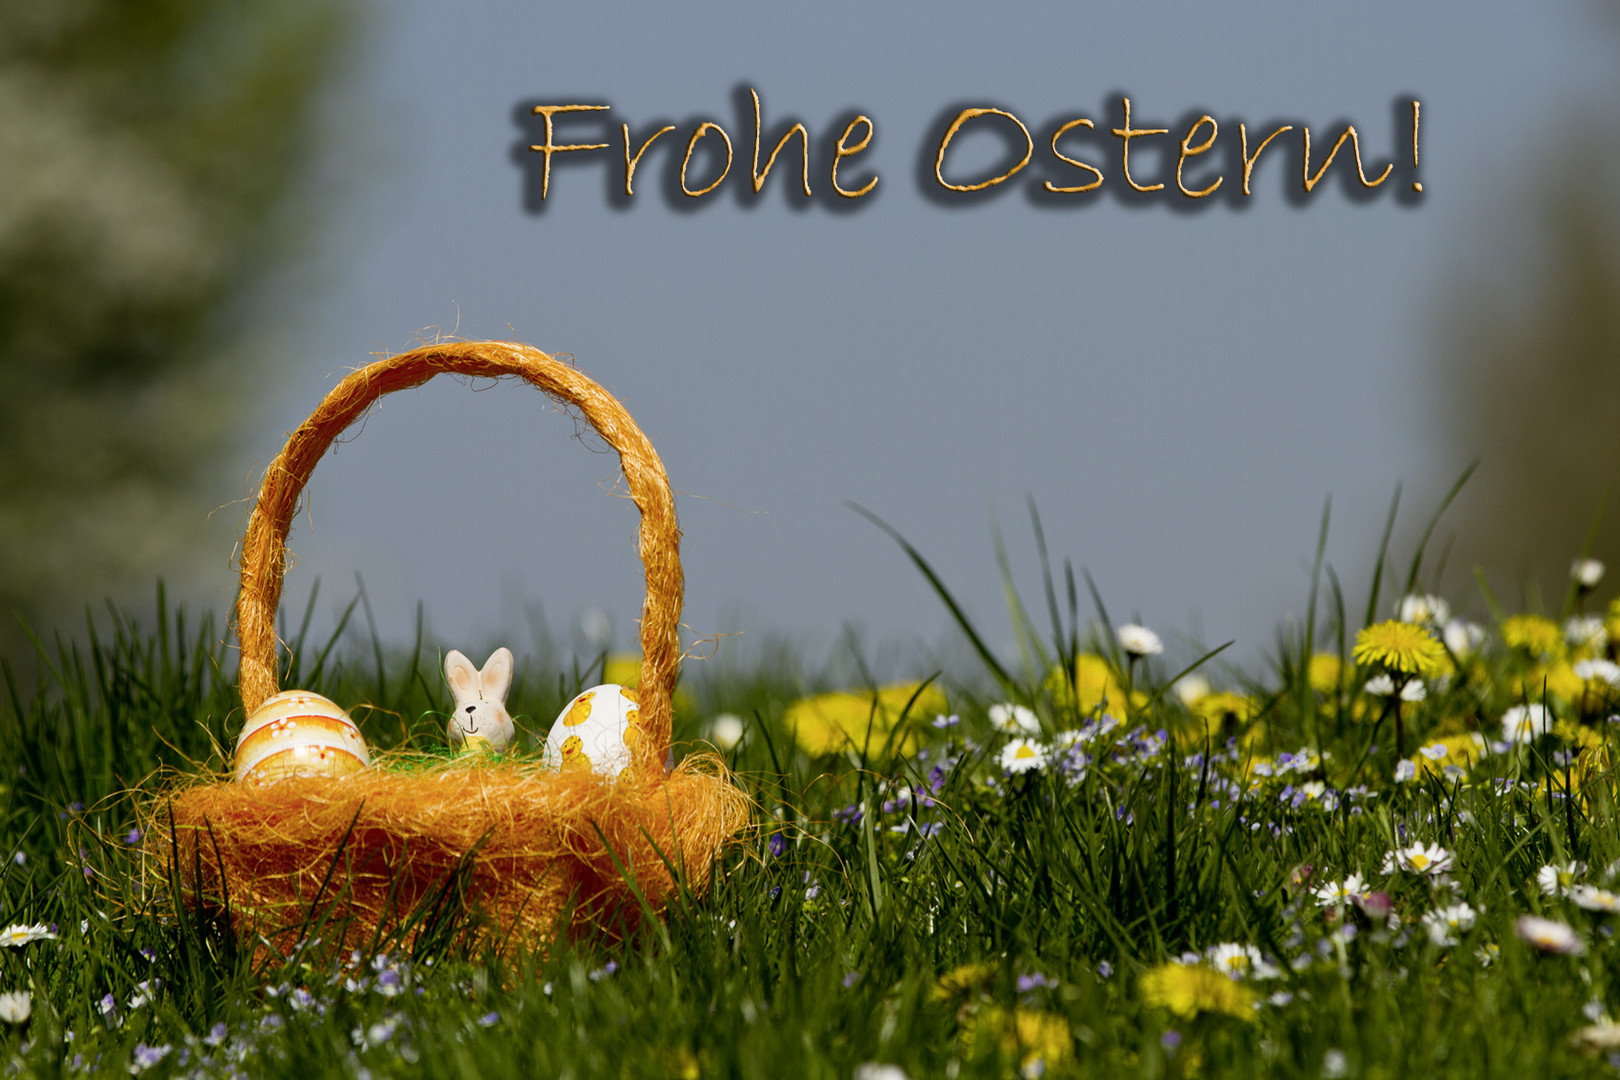 Frohe Ostern 2012!